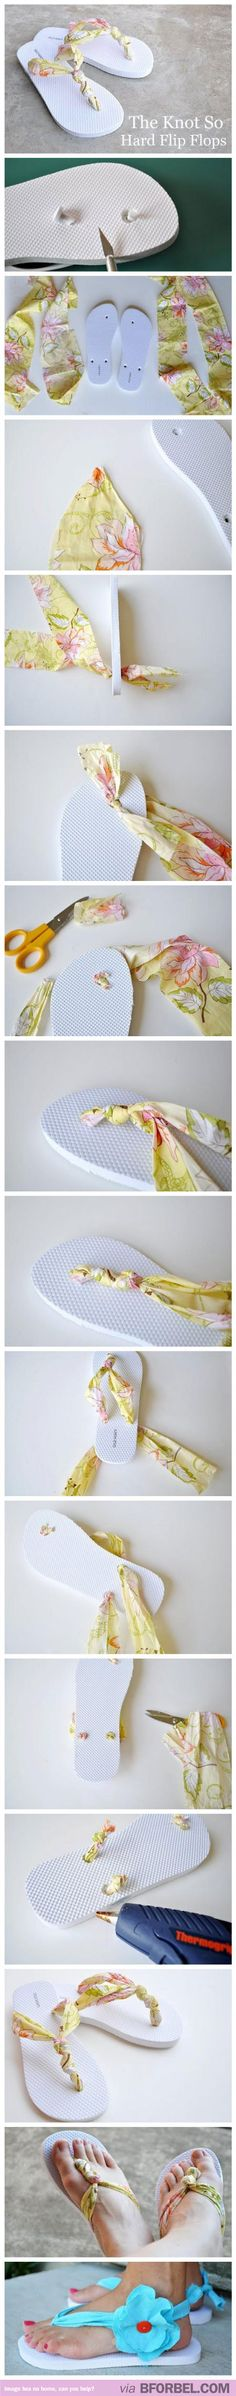 DIY Flip Flops. Looks comfortable and pretty too! - Definitely going to do this. I have tons of scrap material and I hate buying thongs these days because they're all the rubber ones that hurt my feet but these would be great!